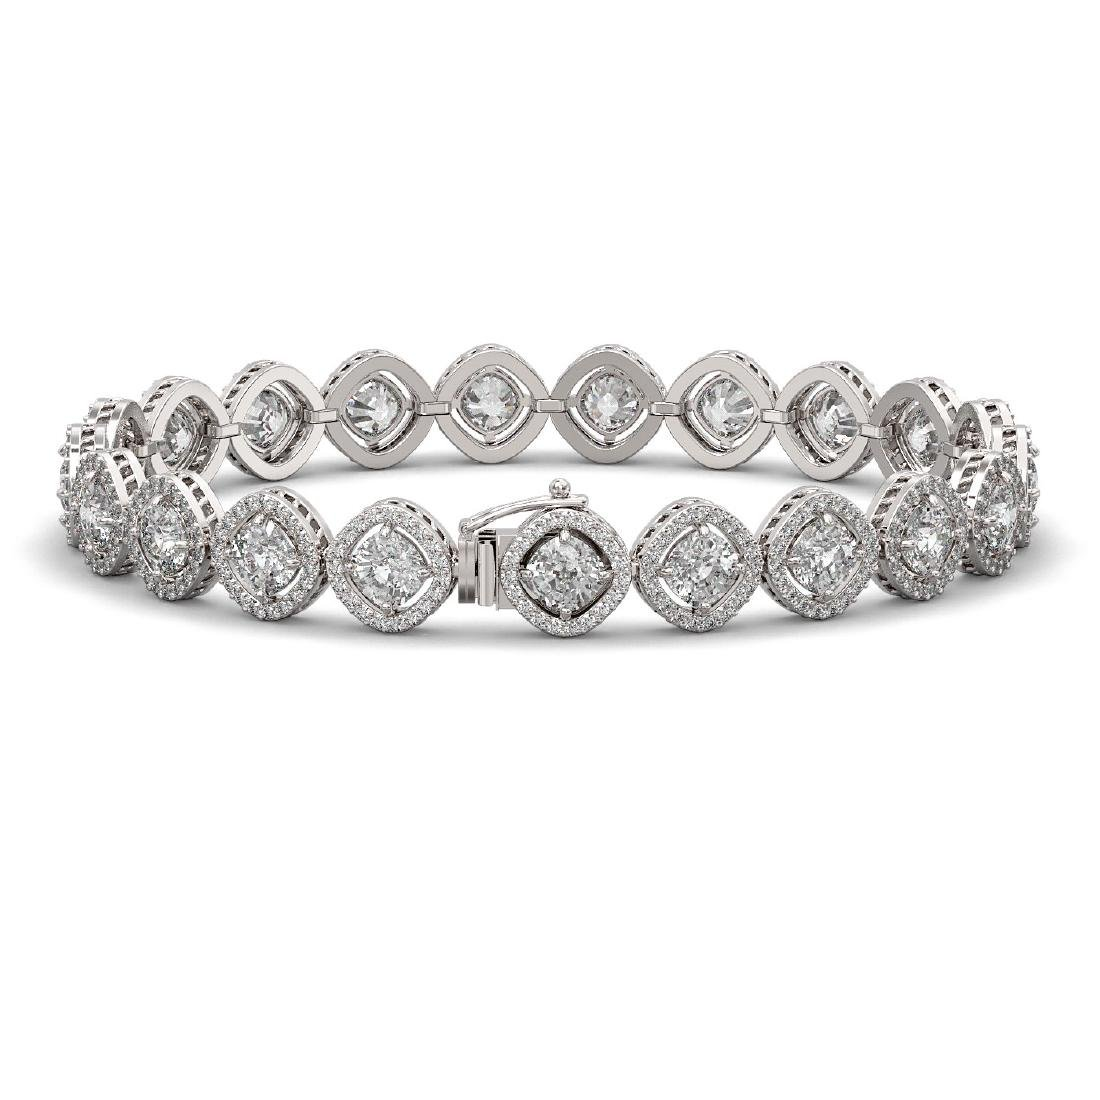 13.06 CTW Cushion Cut Diamond Designer Bracelet 18K - 2